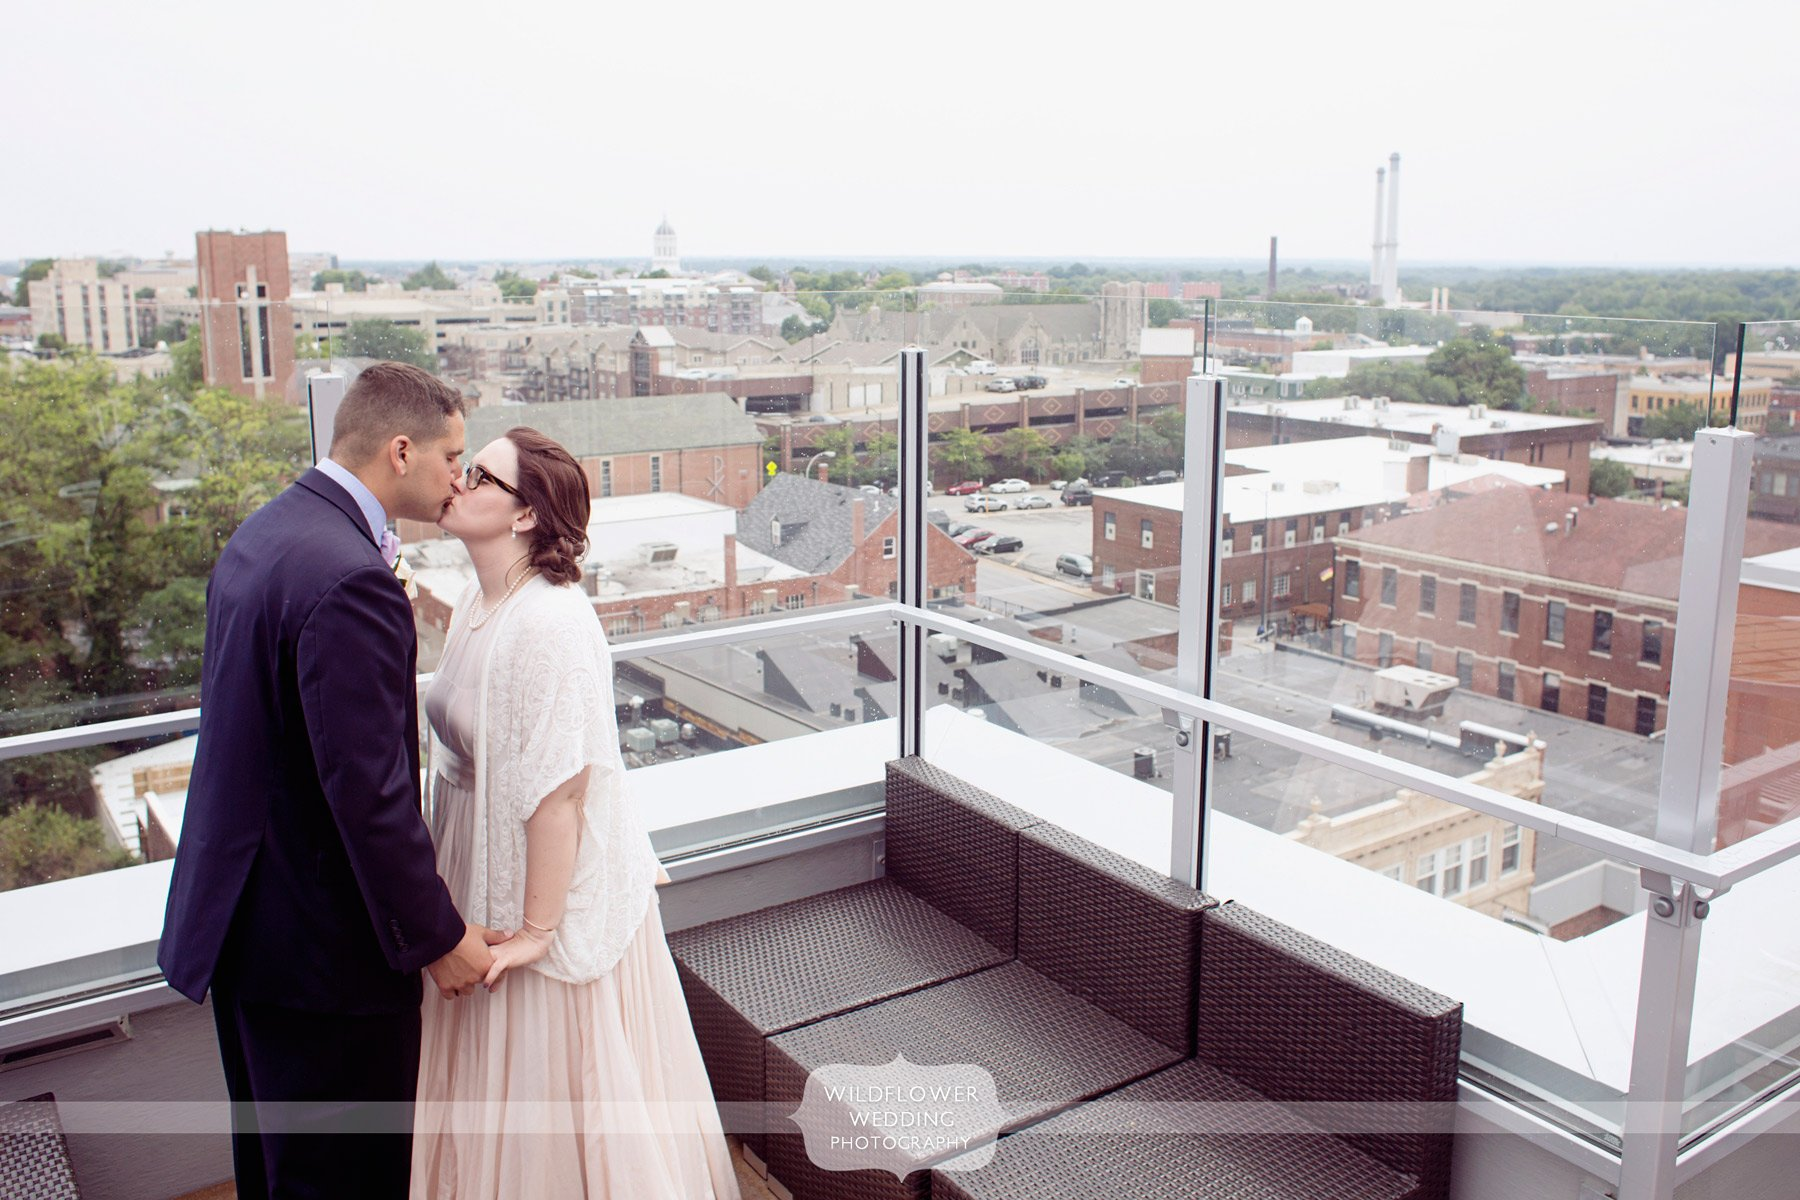 country club of missouri wedding venue picture 7 8 photo by carretto studio rustic outdoor photography